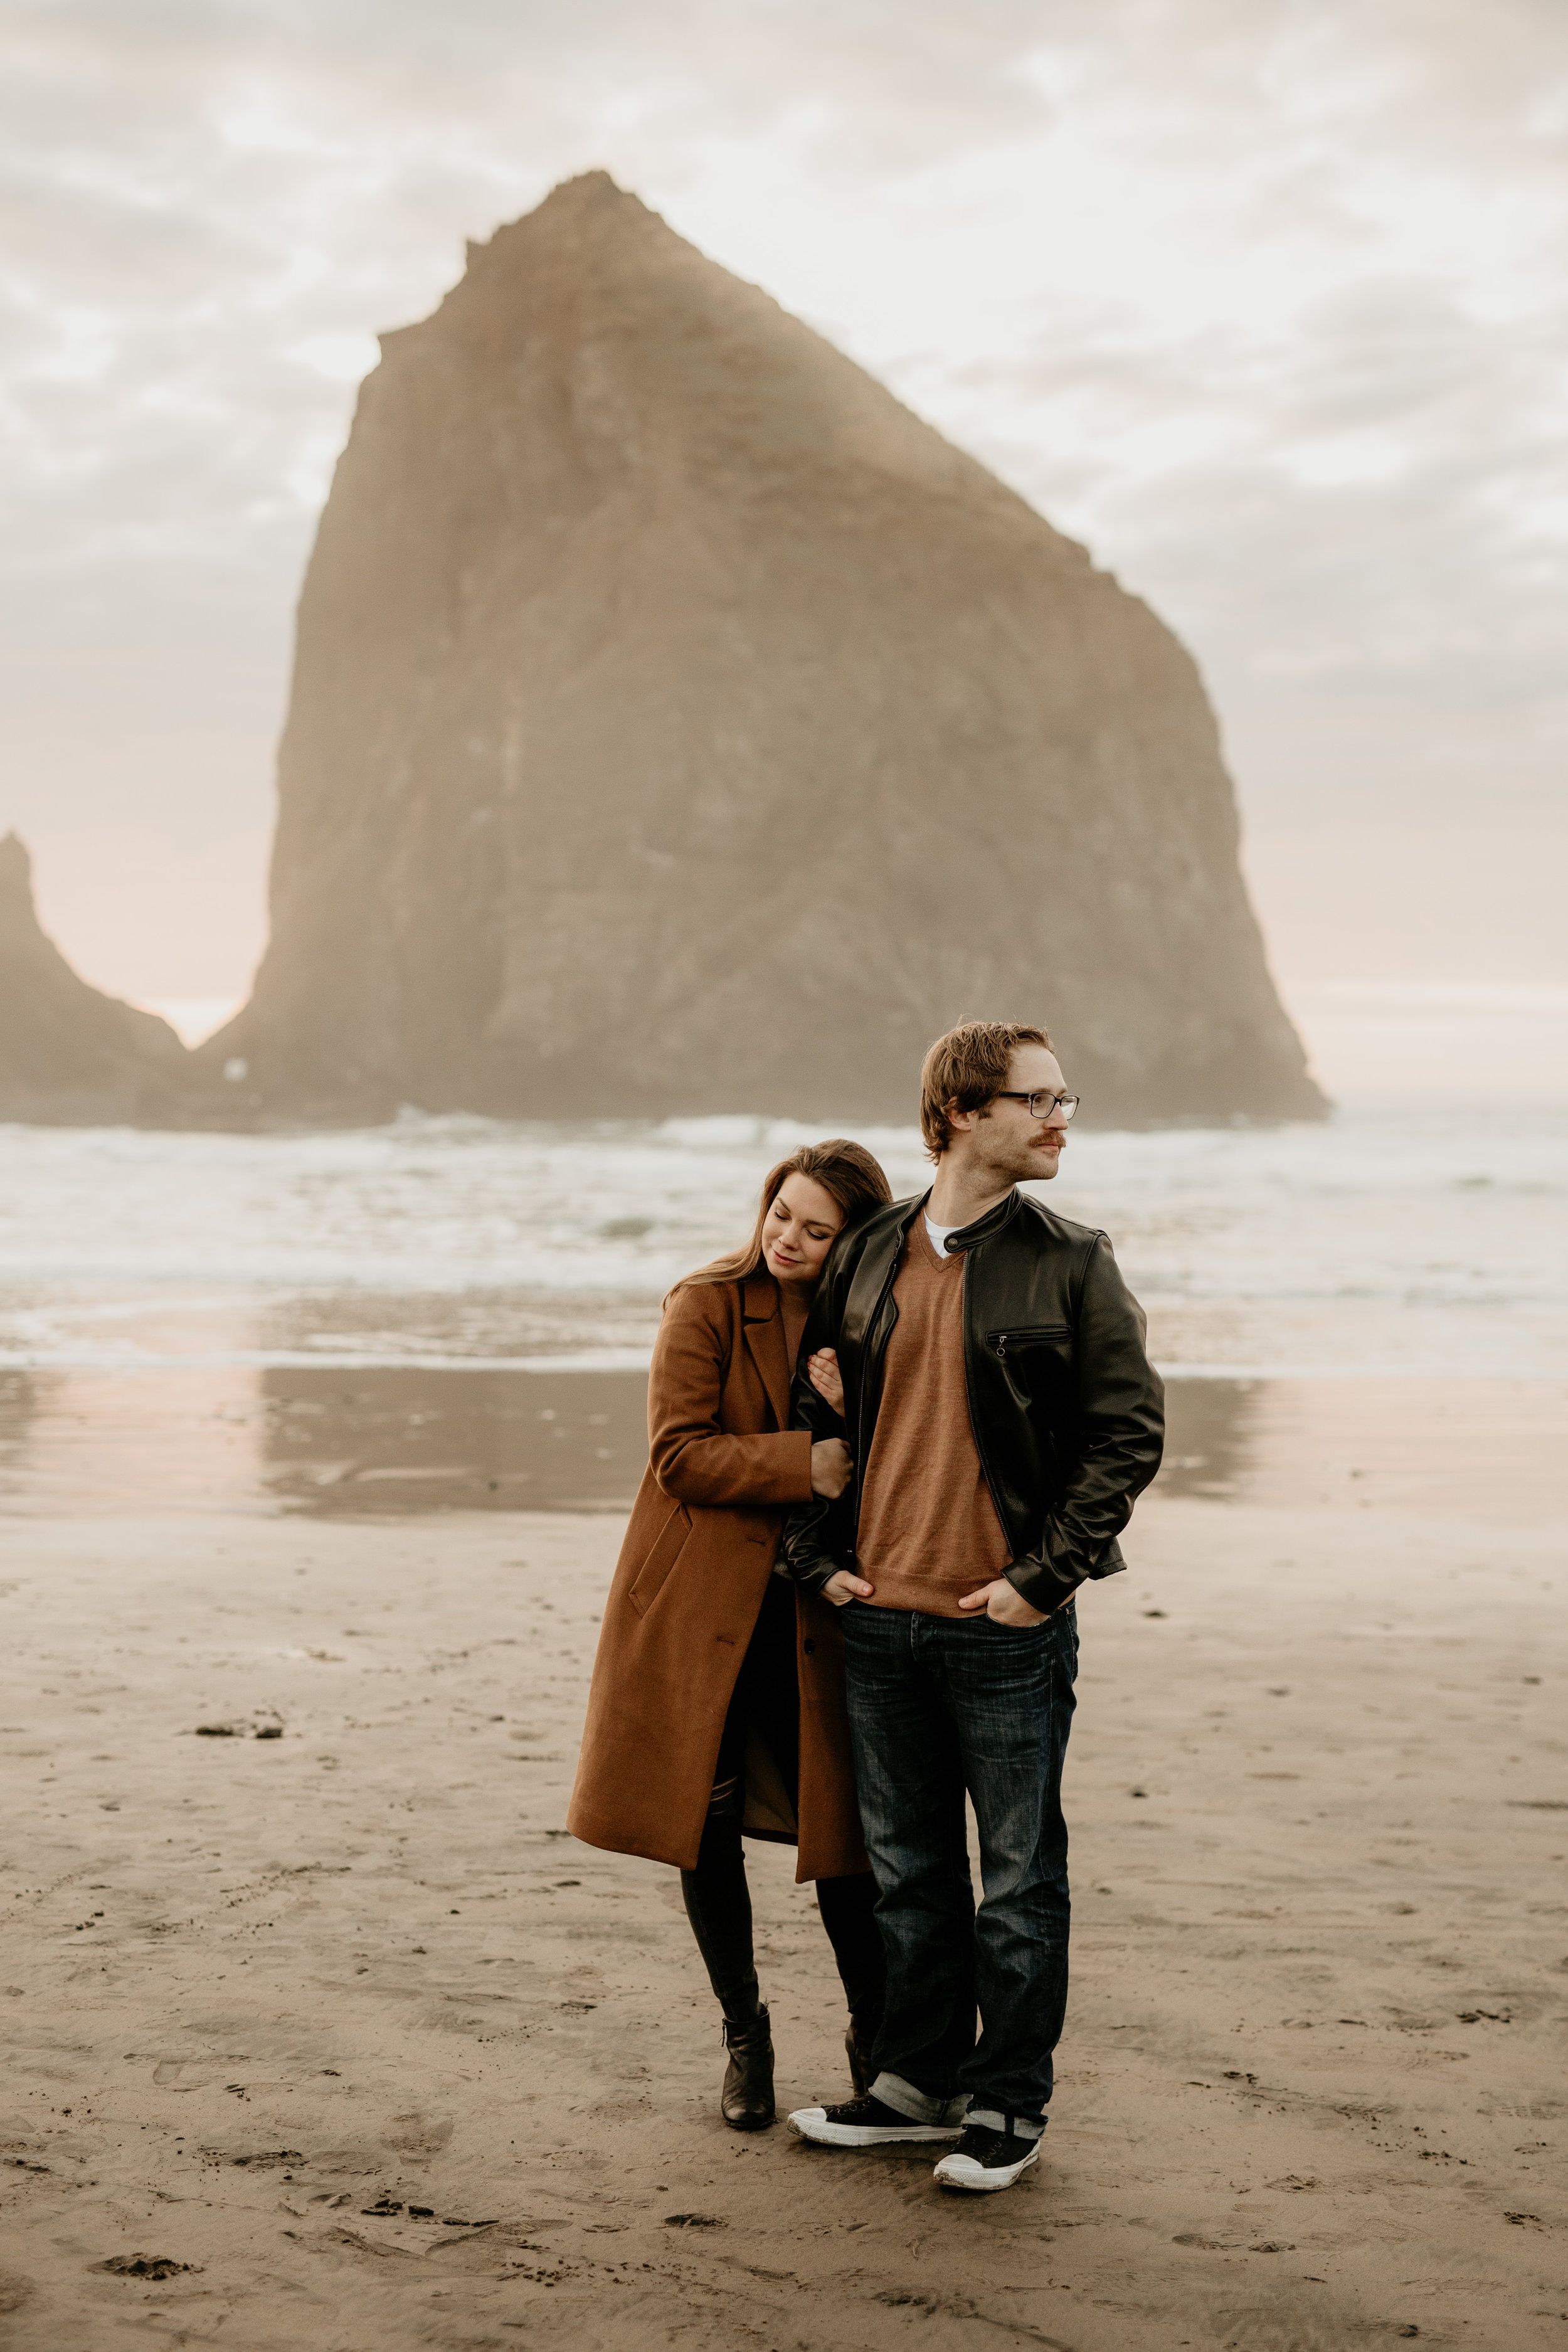 Cannon Beach photography - Cannon Beach sunset - cannon beach photos photos - cannon beach photographer - cannon beach Wedding photography - Oregon engagement locations - best PNW Elopement locations - best Oregon photographers - Cannon beach engagement session - Cannon beach sunset engagement photos - best engagement outfits - best Oregon photography - beach engagement photography - oregon beach Wedding Photography - cannon beach hike - seaside engagement photography BreeAnna lasher - Astoria engagement photography - hug point engagement photos - arch cape engagement photos - Oswald state park engagement photos - cola state park engagement photos